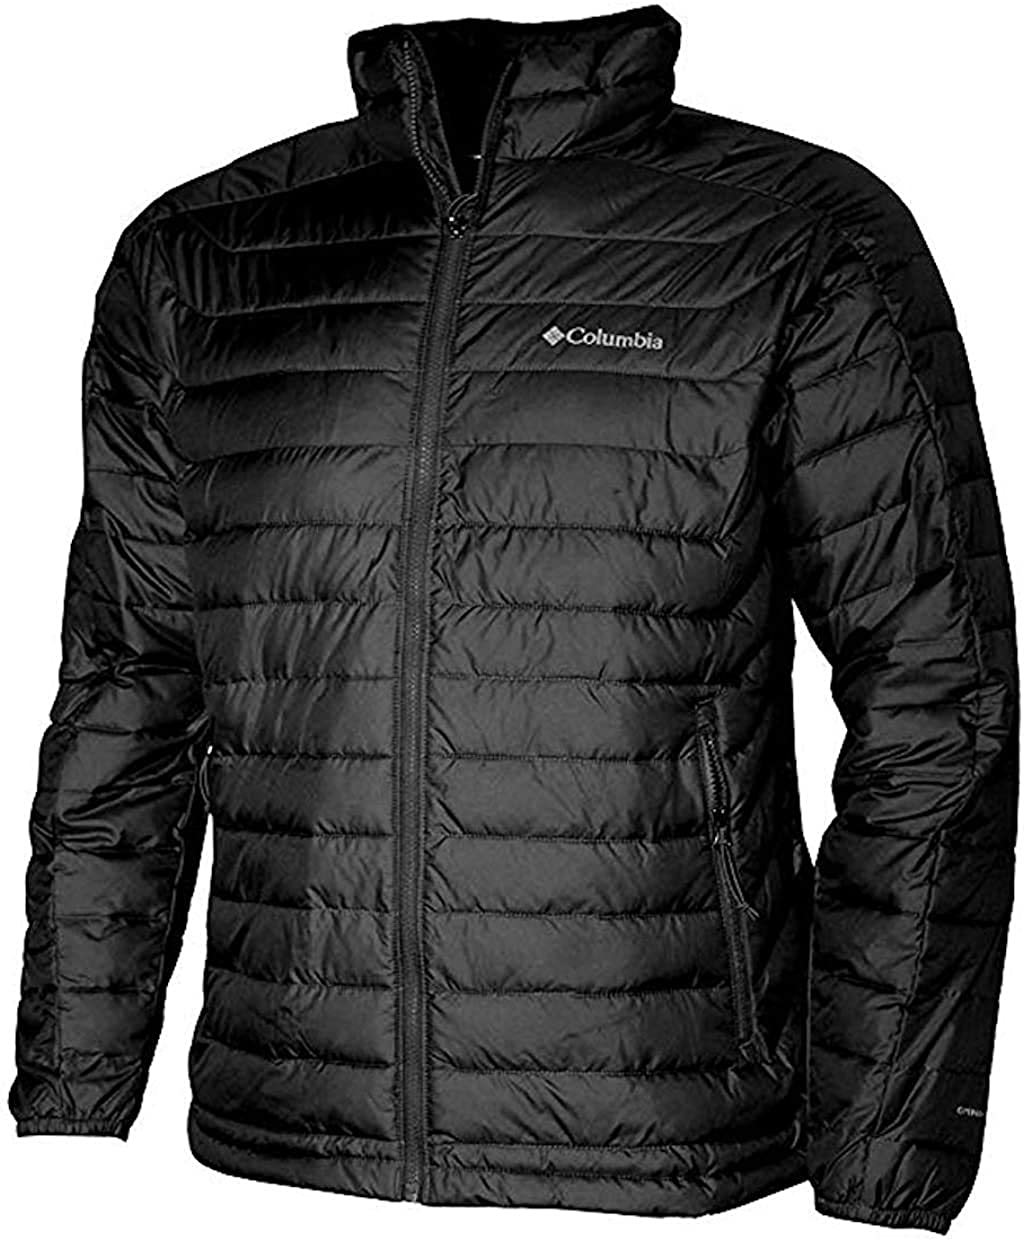 Columbia Men's White Out II Omni Heat Insulated Puffer Jacket